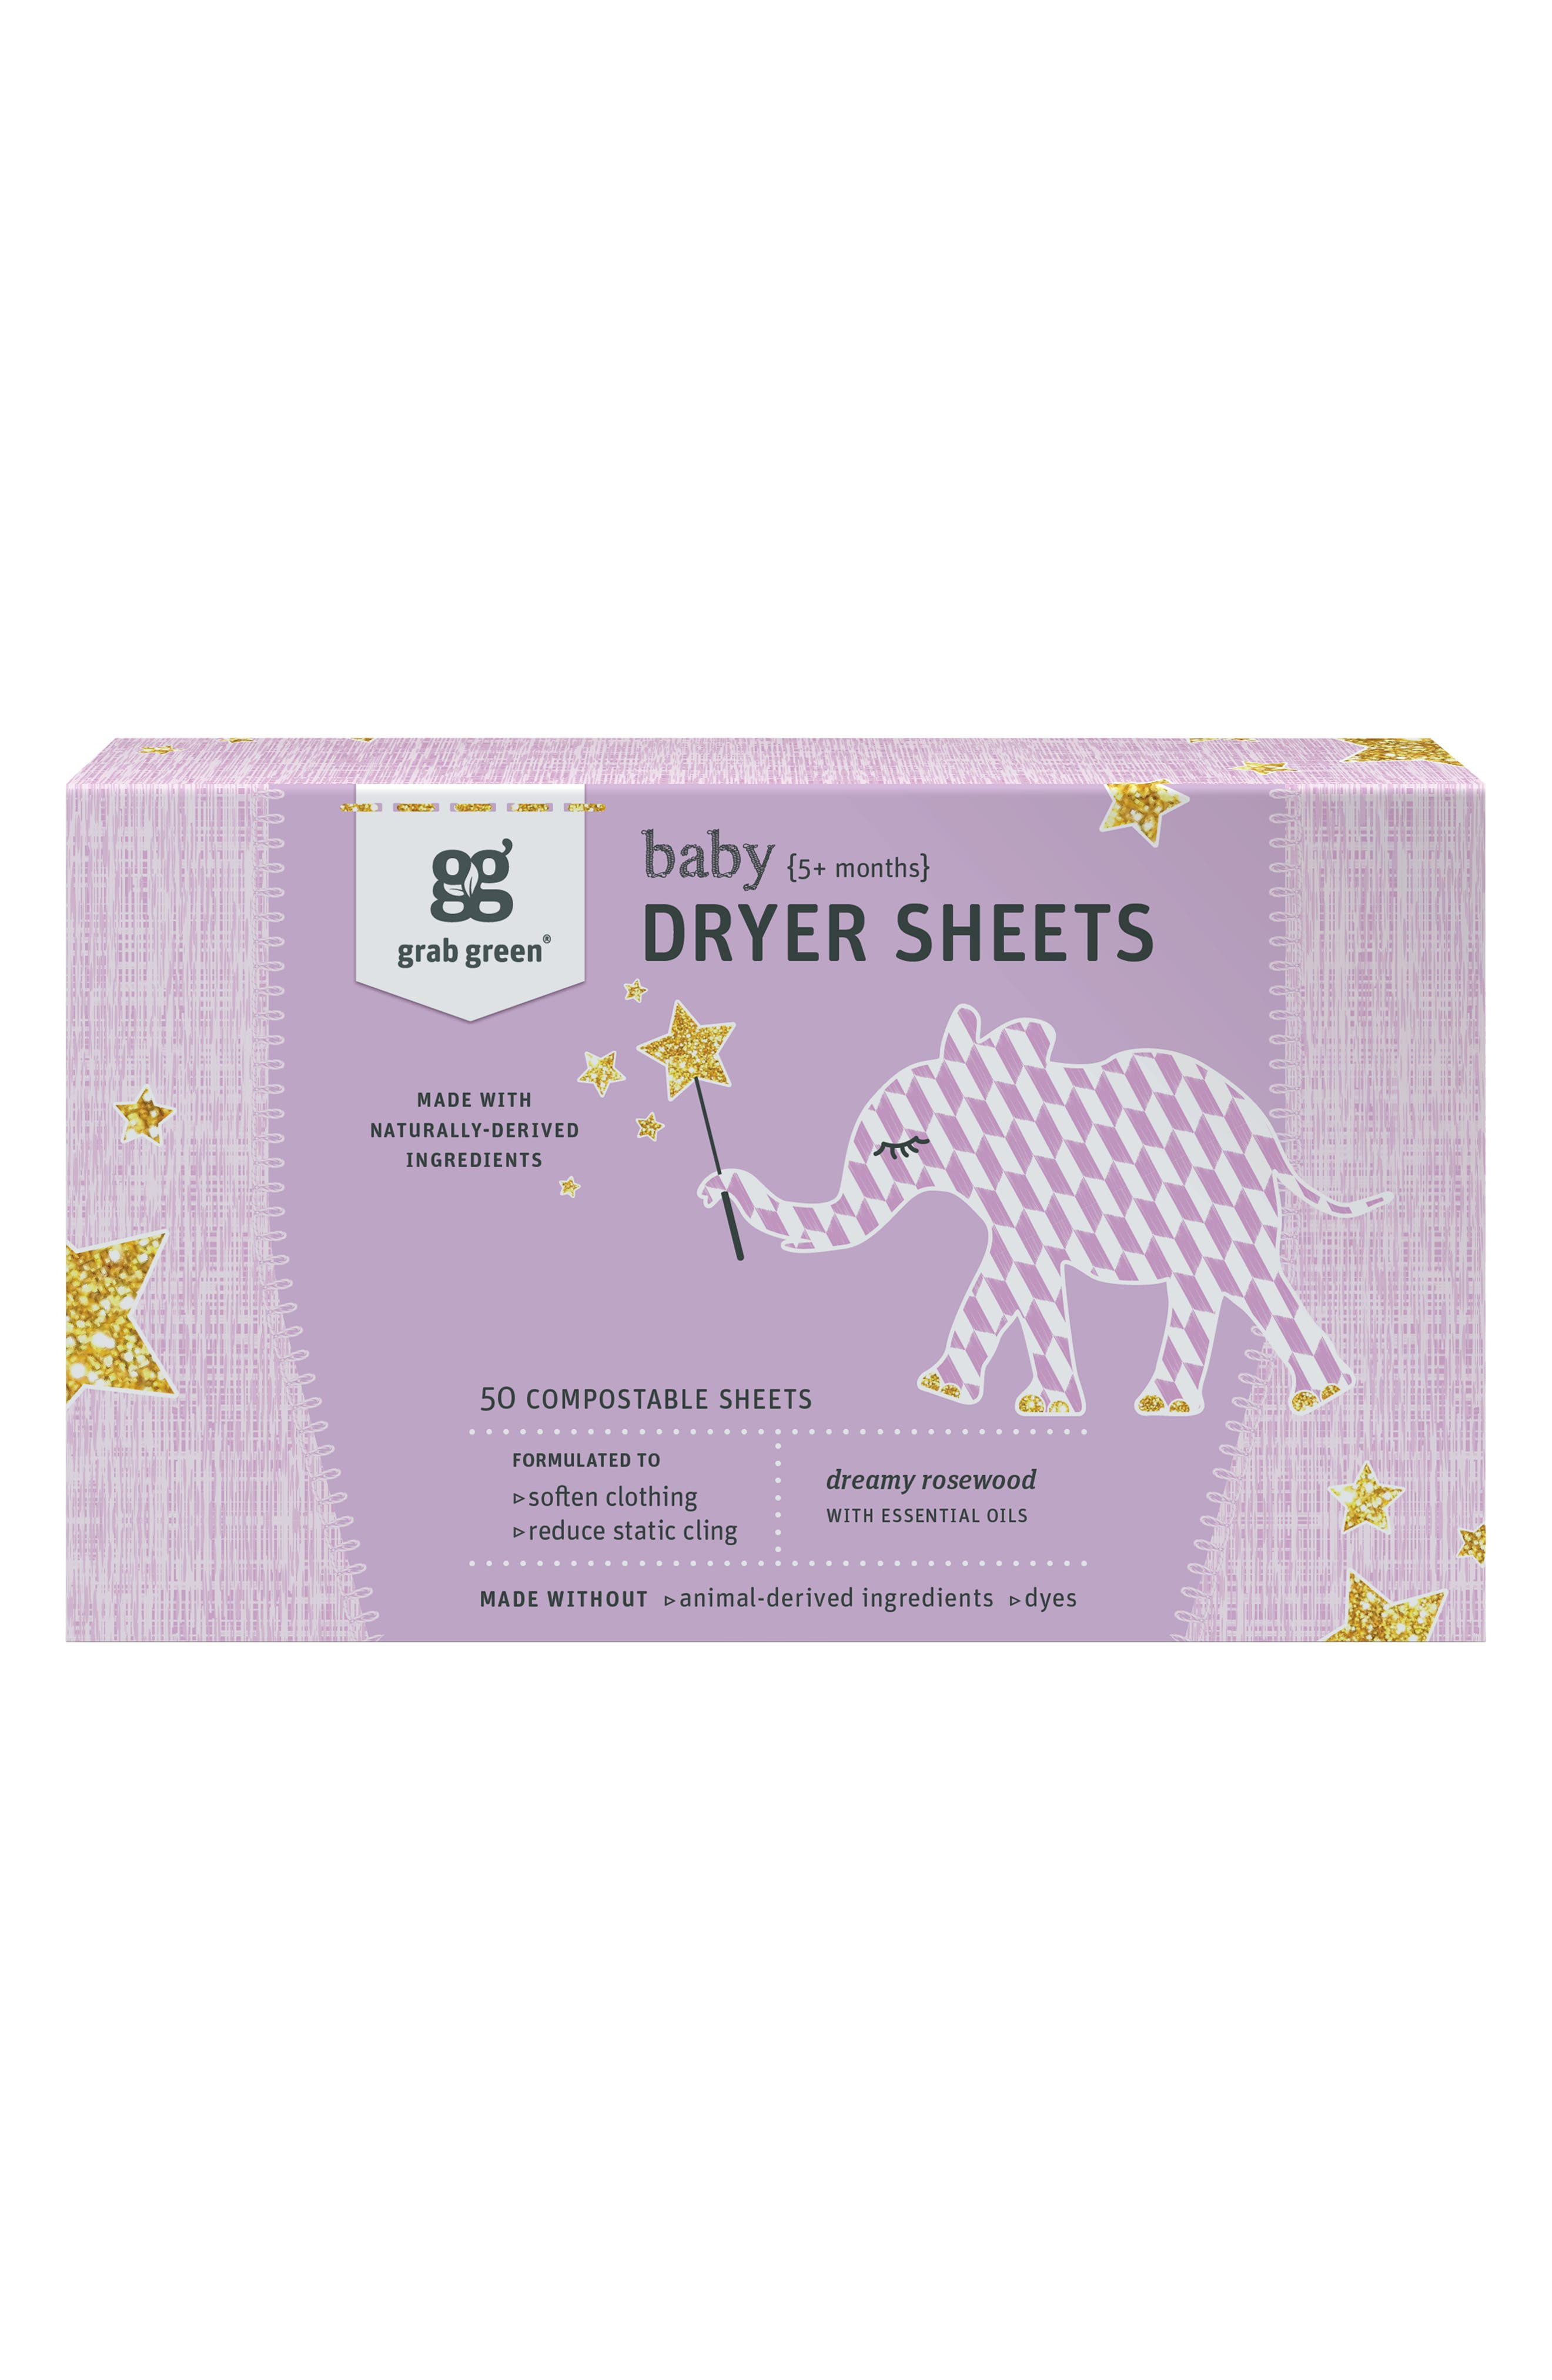 GRAB GREEN, Dreamy Rosewood Baby Laundry Pods & Dryer Sheets, Alternate thumbnail 2, color, PURPLE